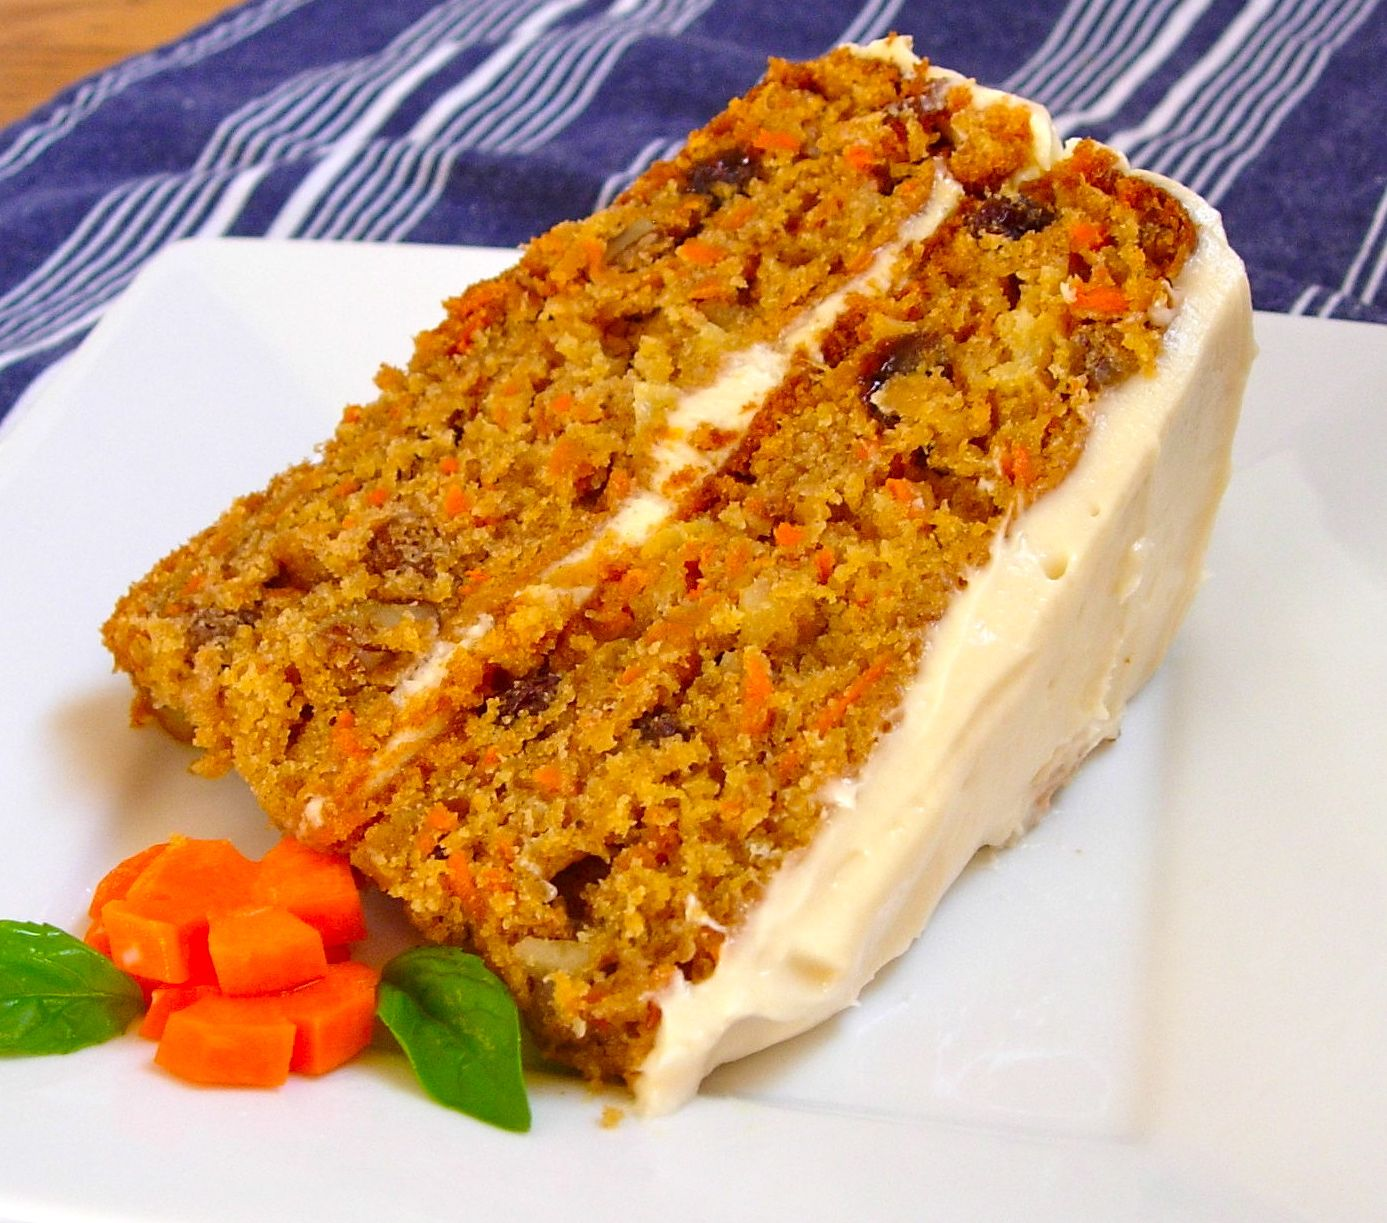 How Do You Make The Frosting For Carrot Cake